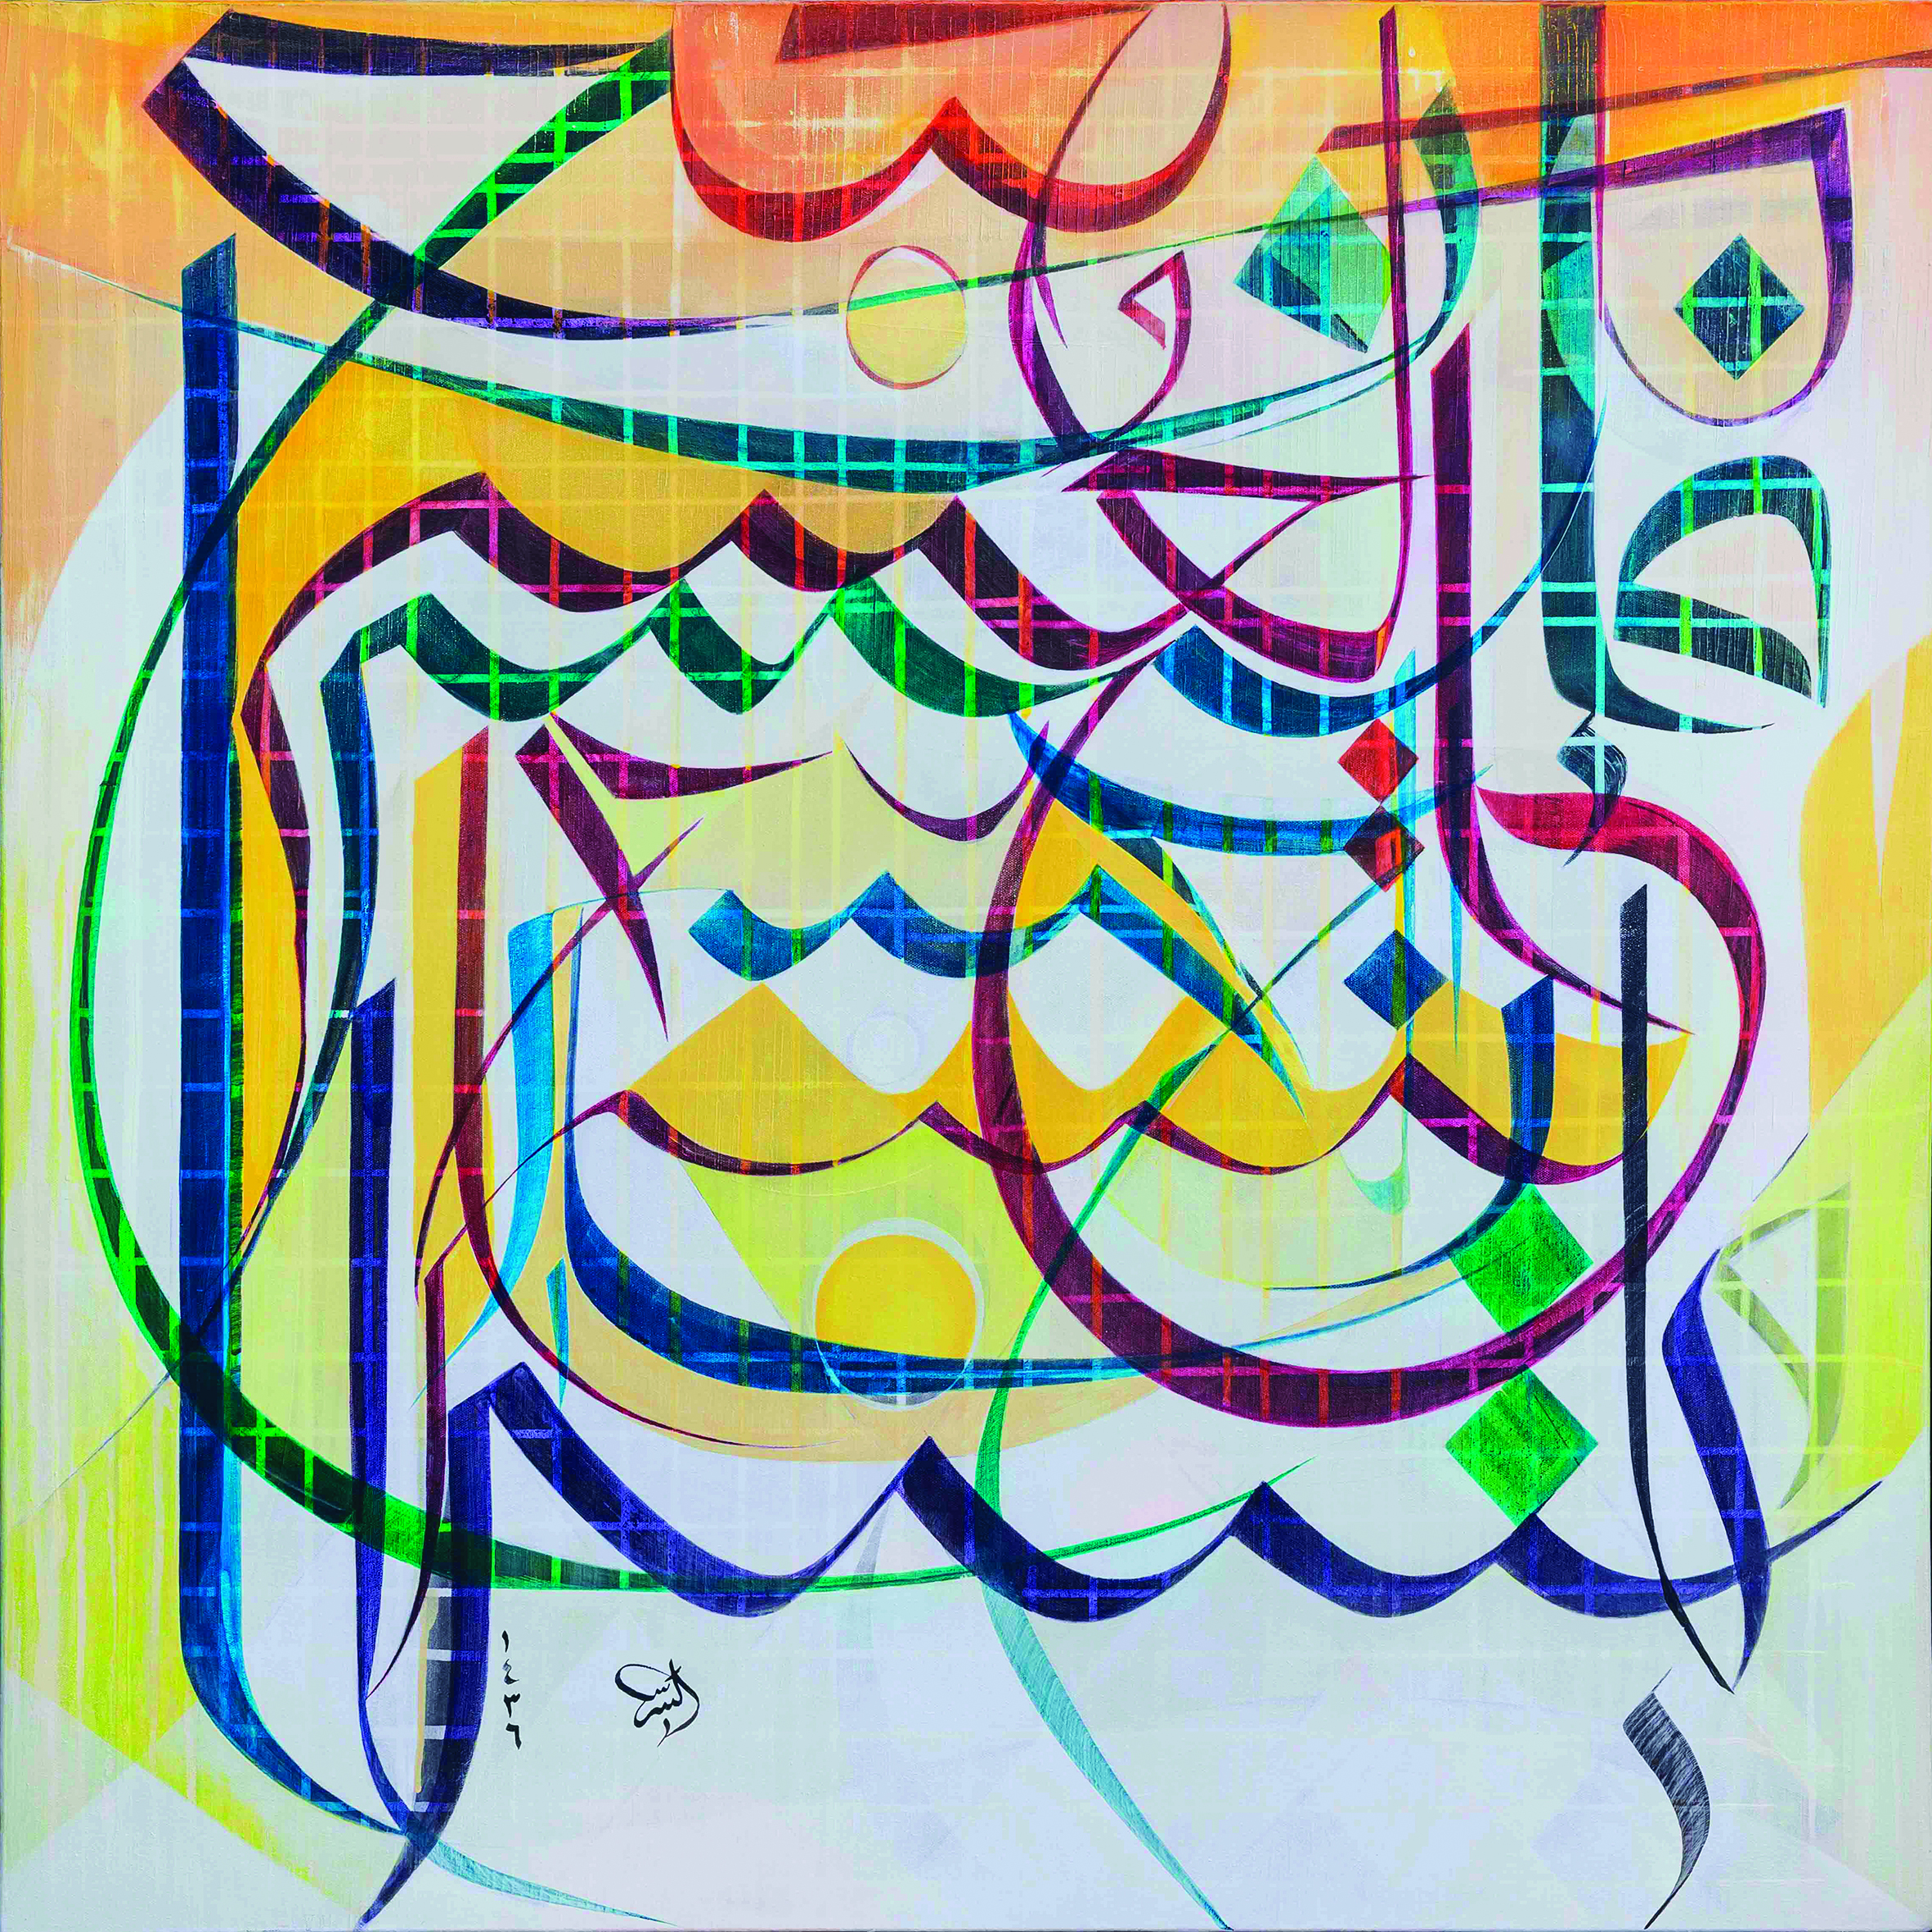 "Quran 1 ""For indeed, with hardship [will be] ease (5) indeed, with hardship [will be] ease (6)"" (The Quran 94:5-6 